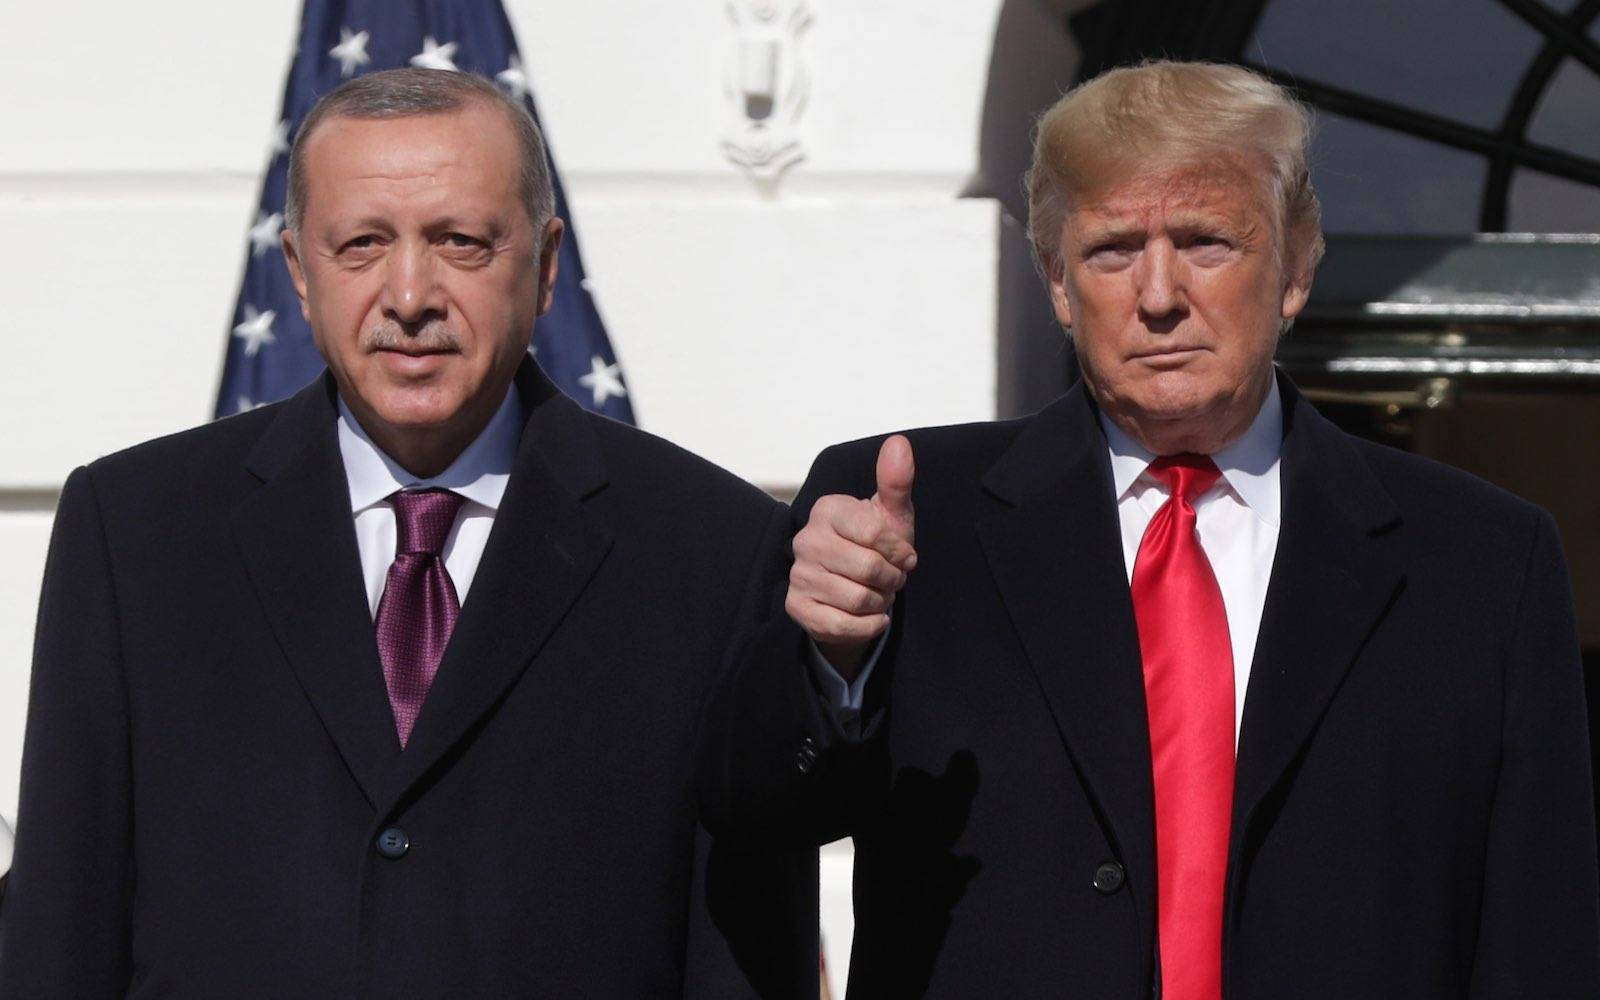 A thumbs-up for Turkish President Recep Tayyip Erdogan upon his arrival at the White House, 13 November (Photo: Alex Wong/Getty Images)